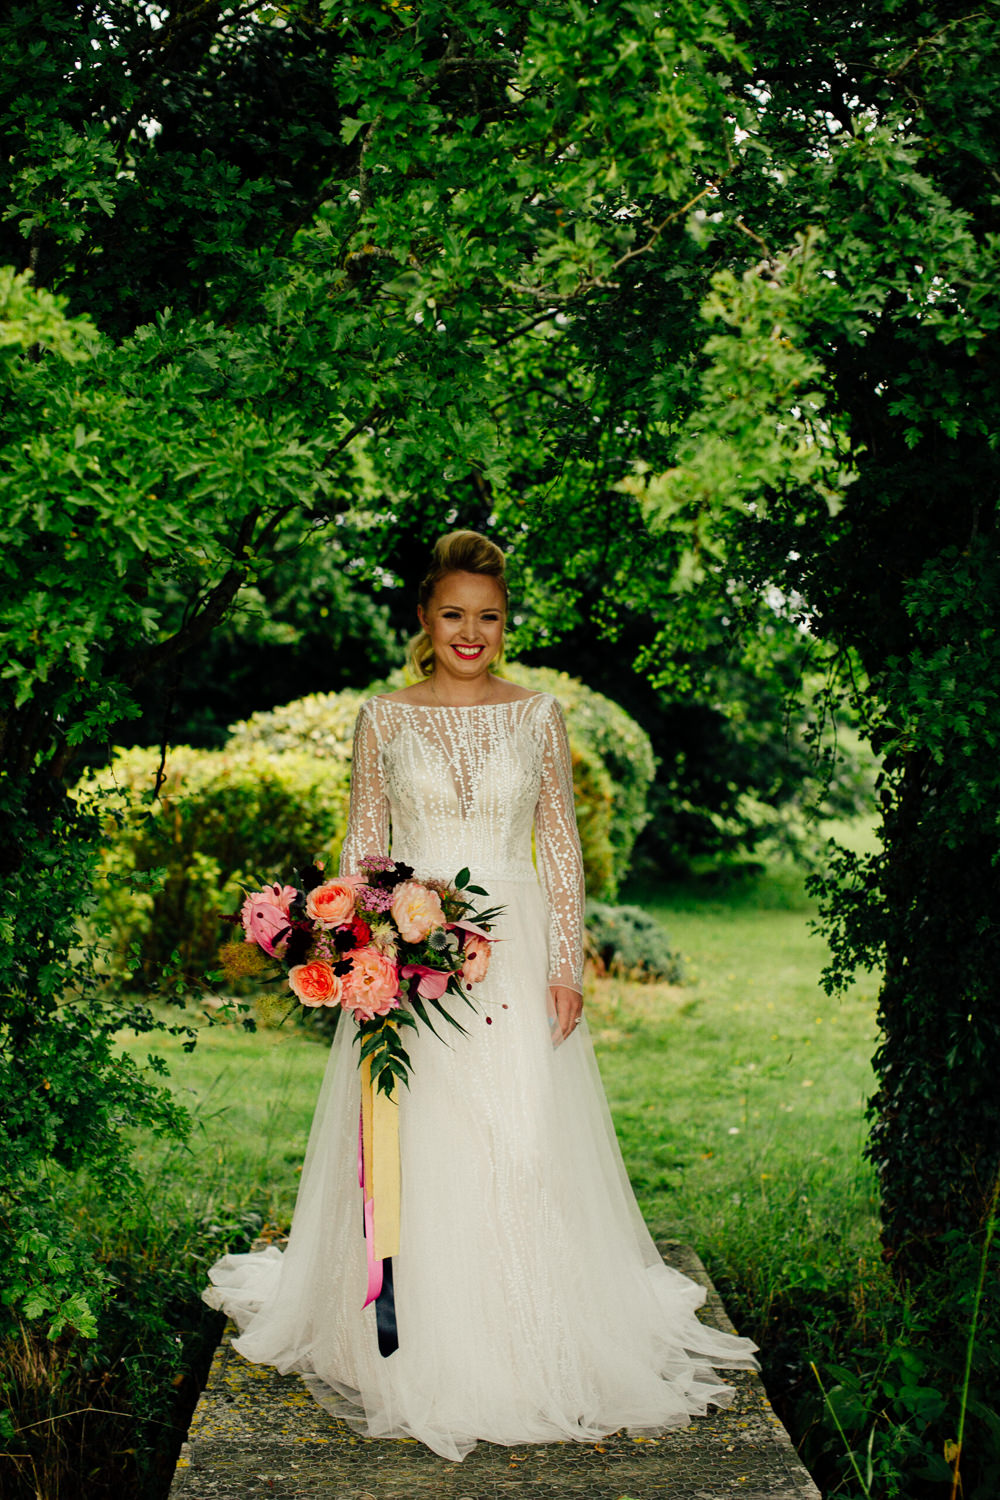 Dress Gown Bride Bridal Long Sleeves Tropical Wedding Inspiration Emily Little Photography